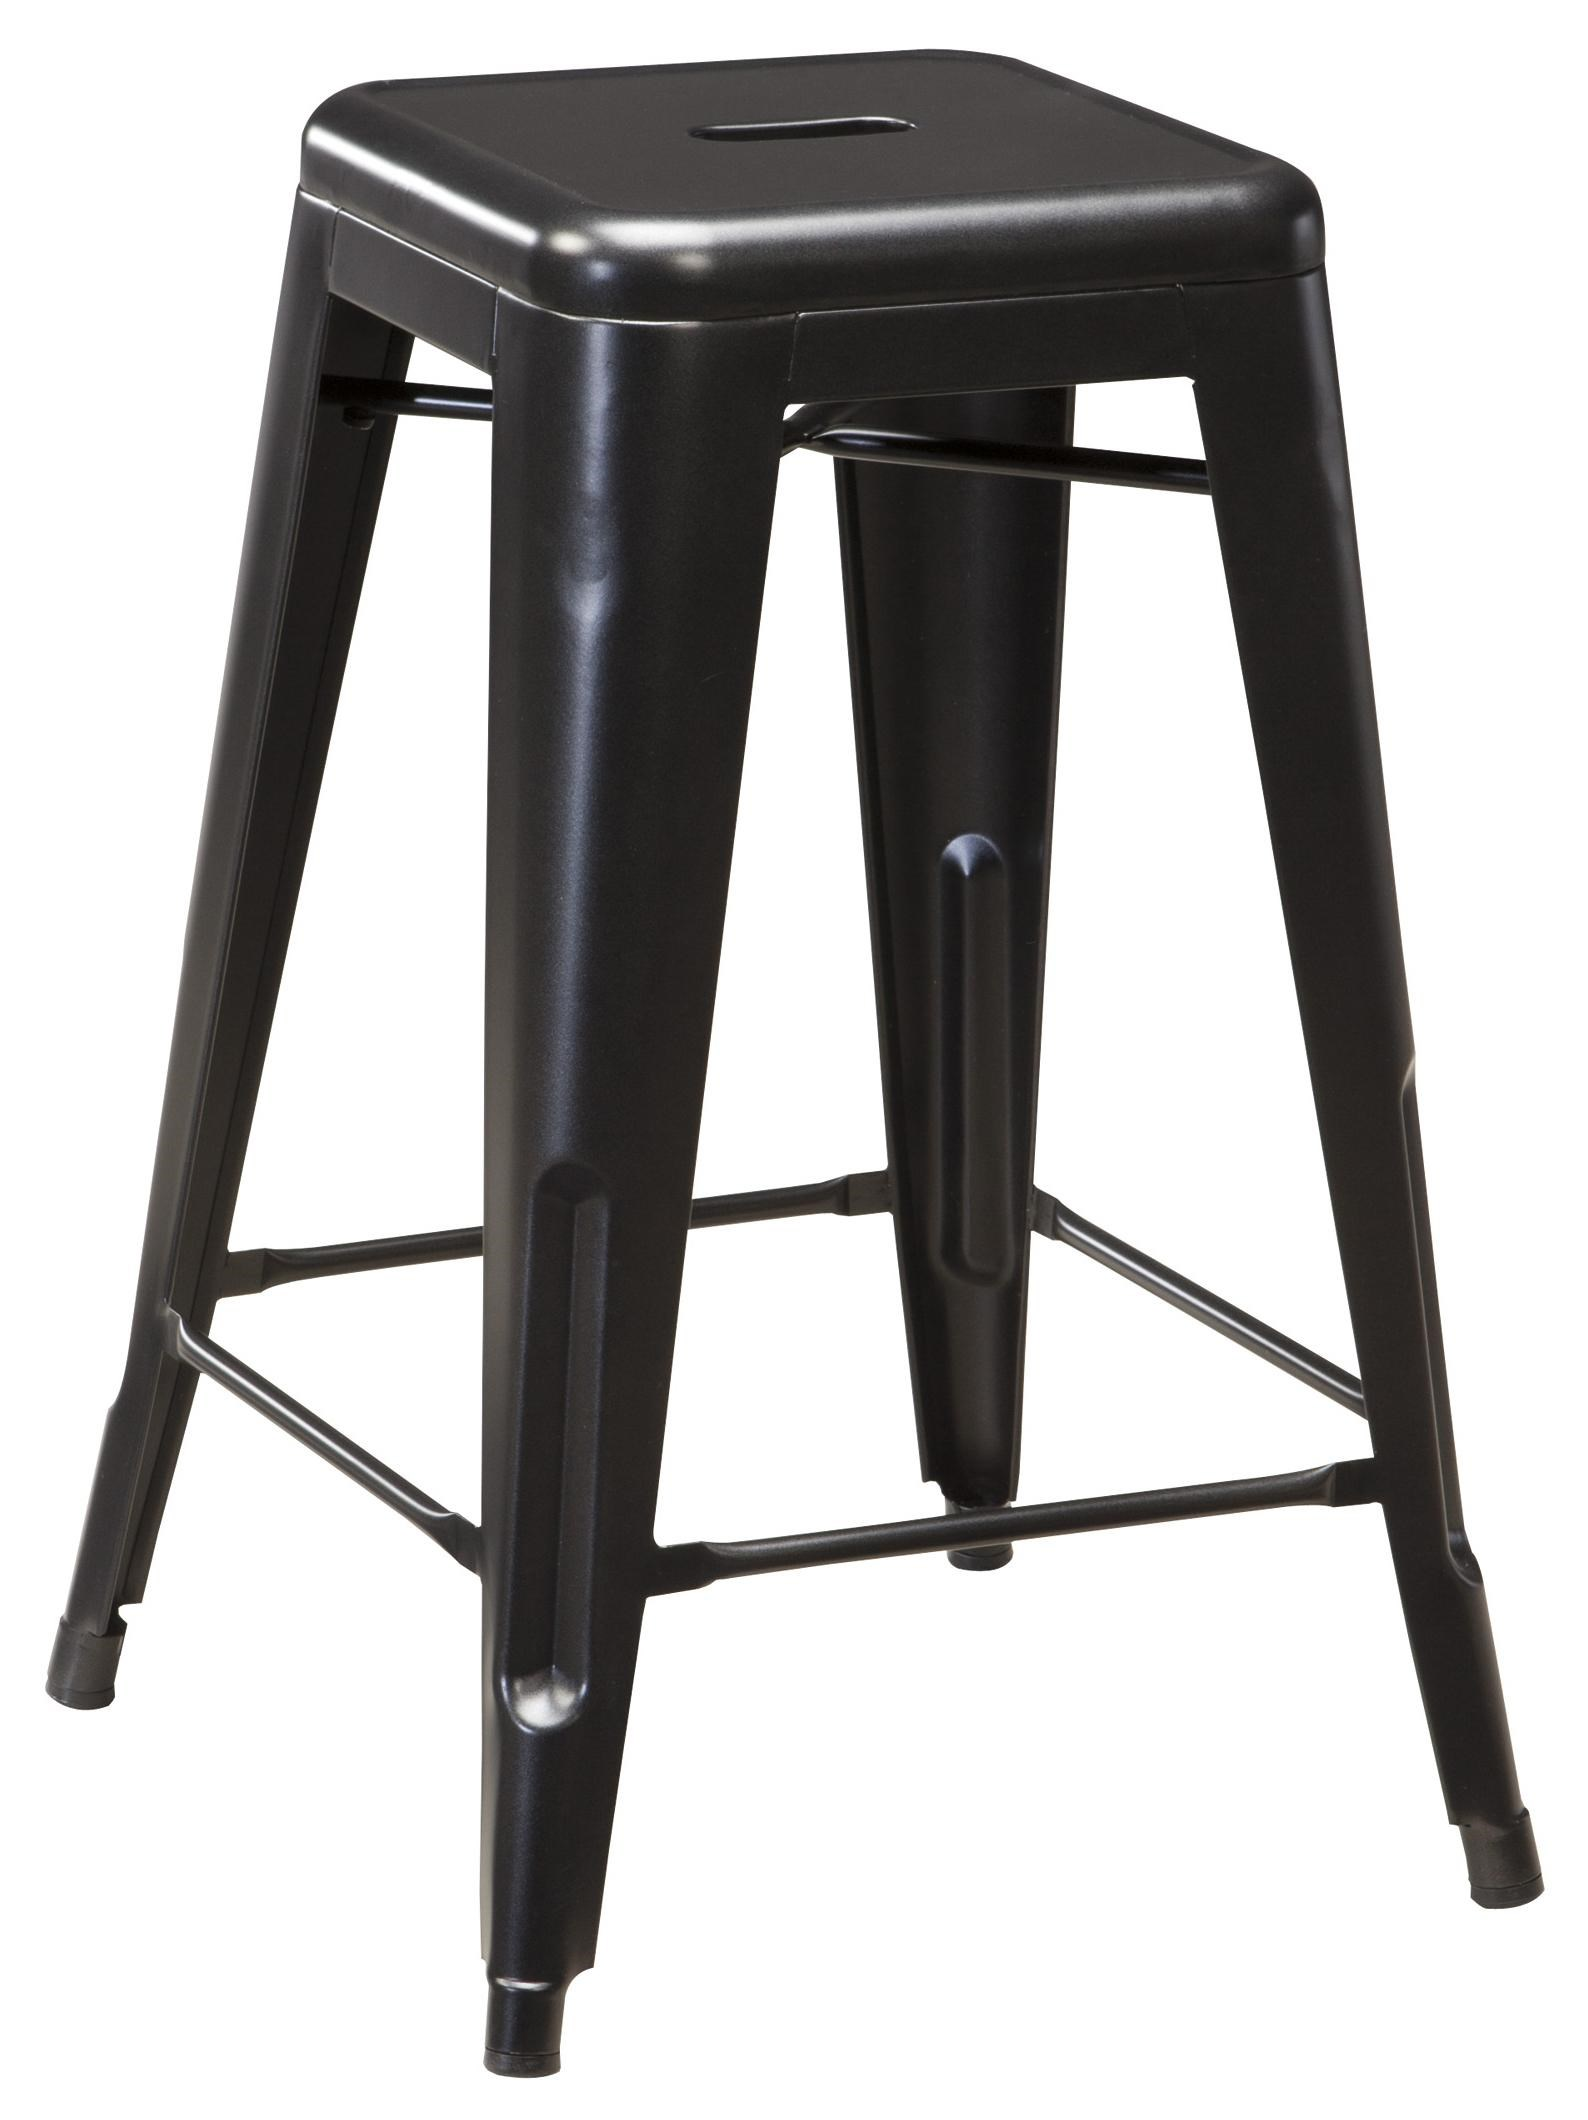 Metal Stools Pinnadel Retro Contemporary Metal Stool By Signature Design By Ashley At John V Schultz Furniture